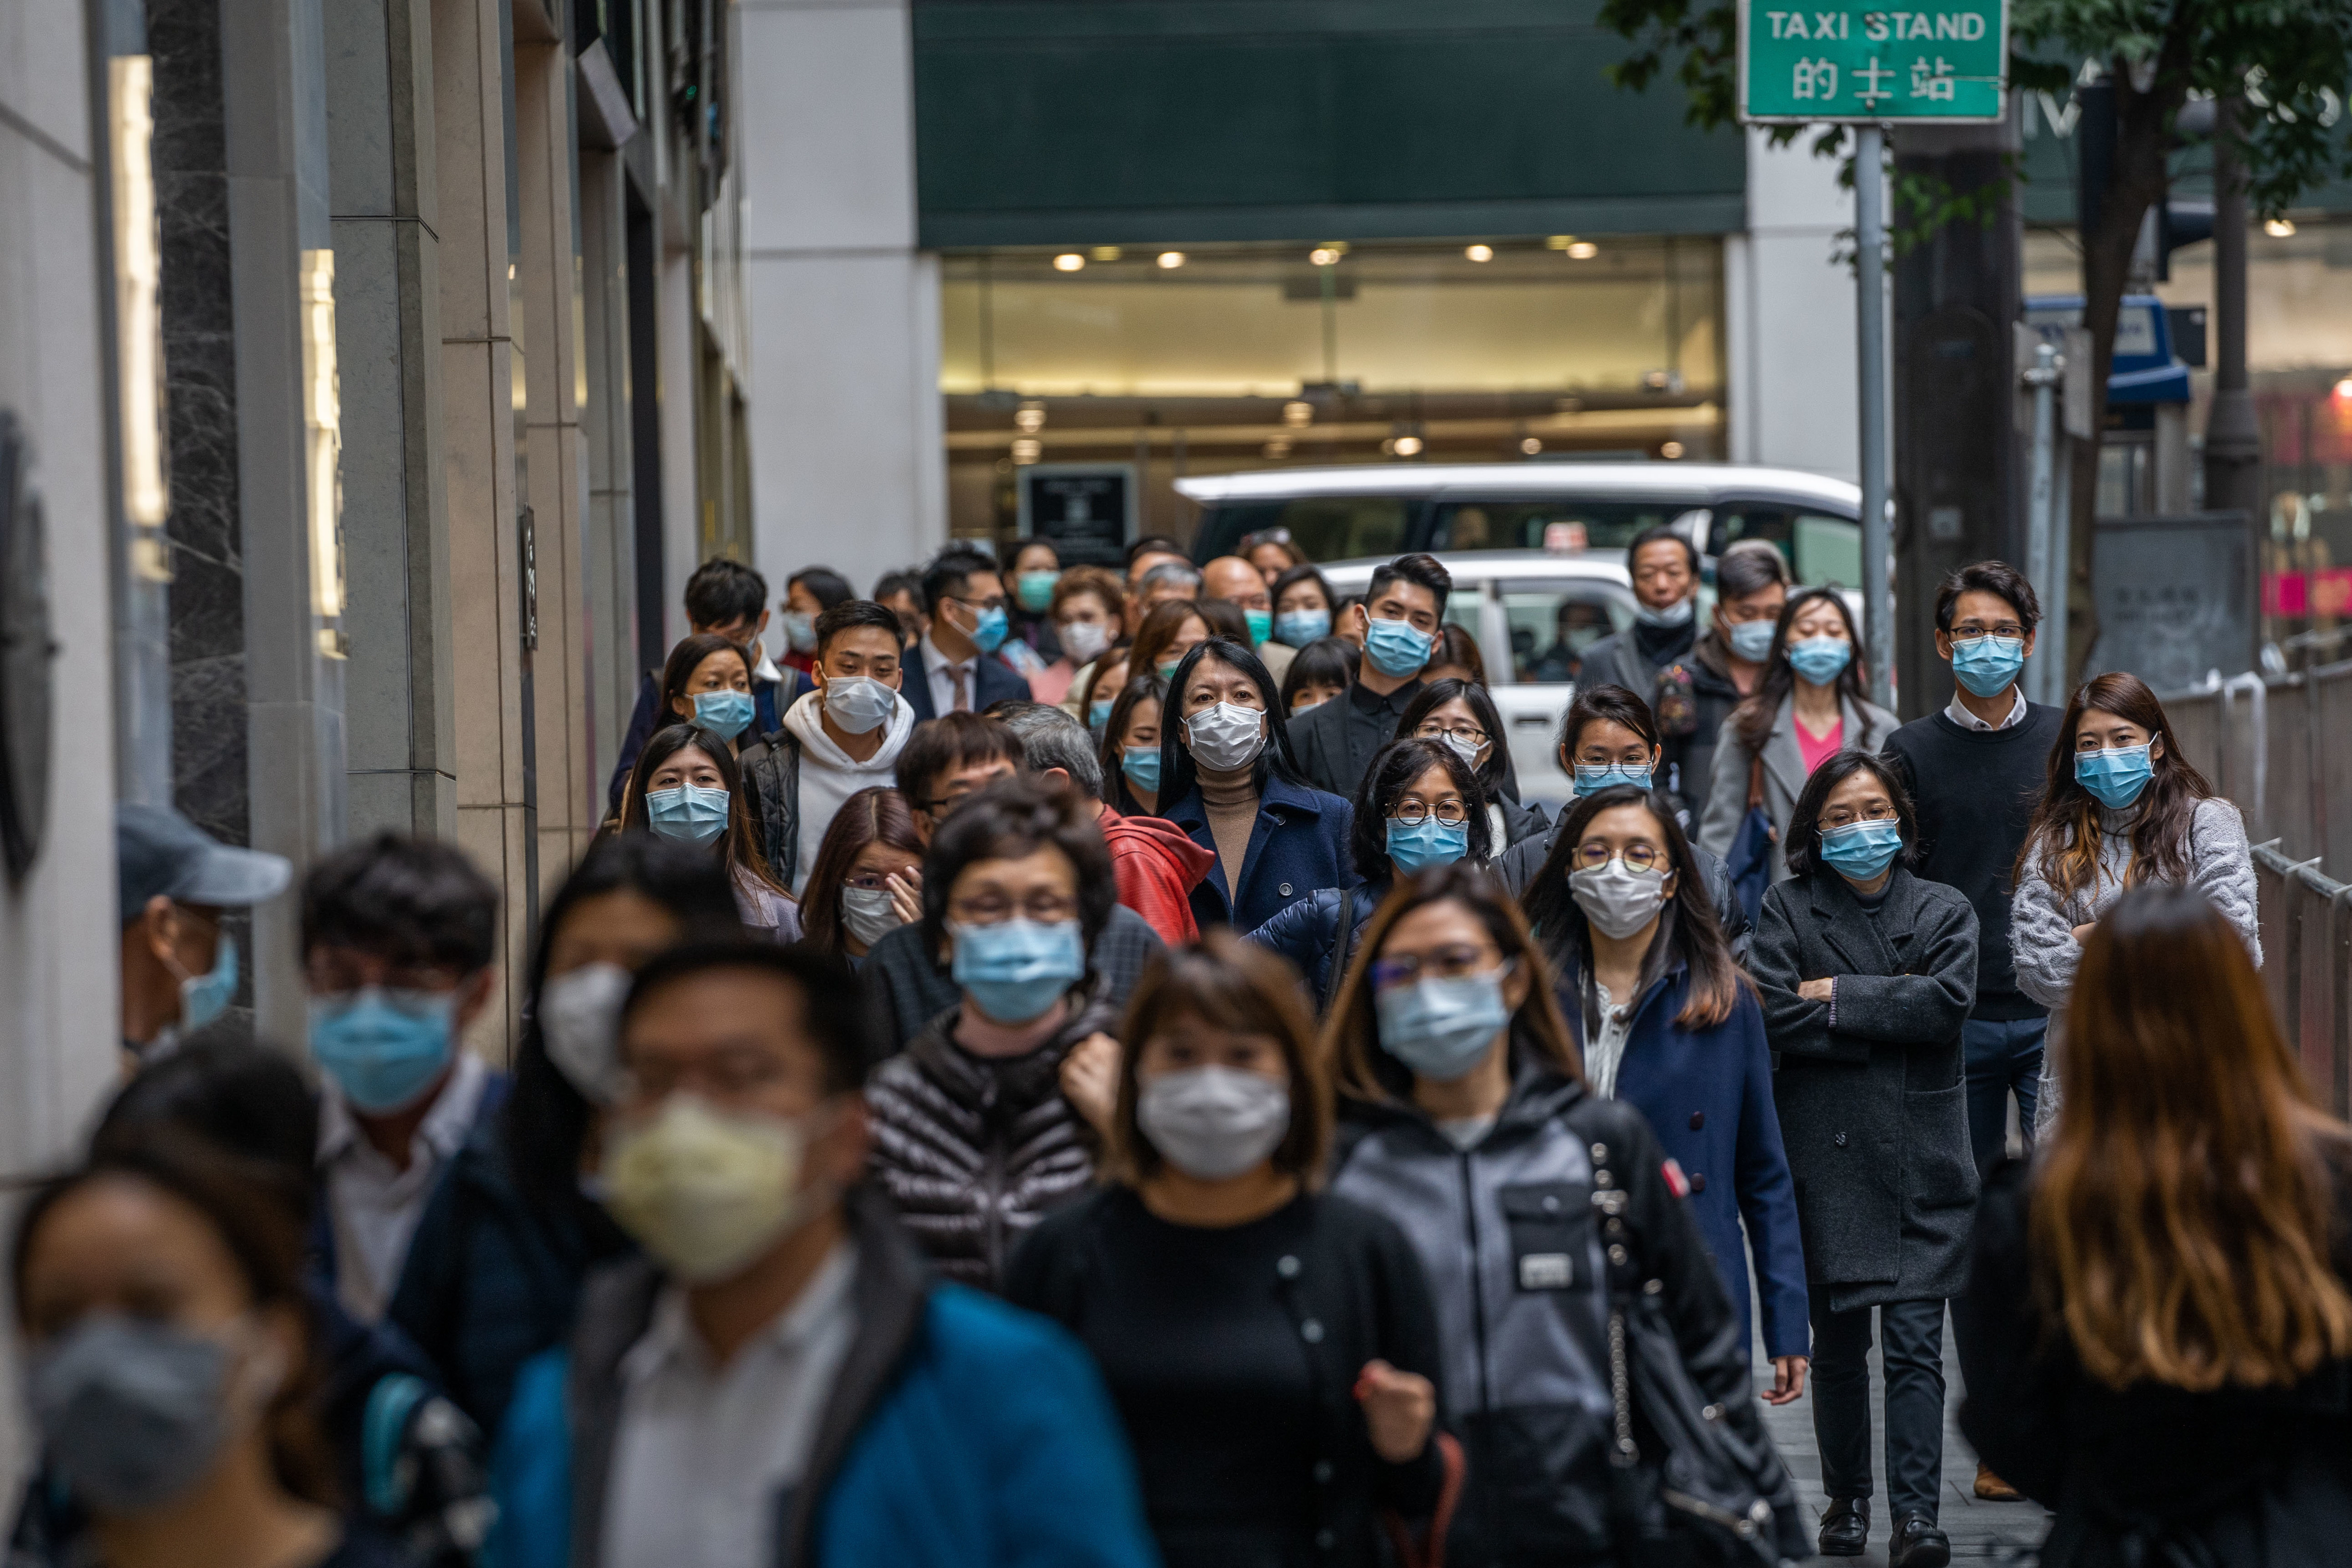 People wearing surgical masks in central district of Hong Kong as a preventative measure following the Coronavirus outbreak which began in the Chinese city of Wuhan.